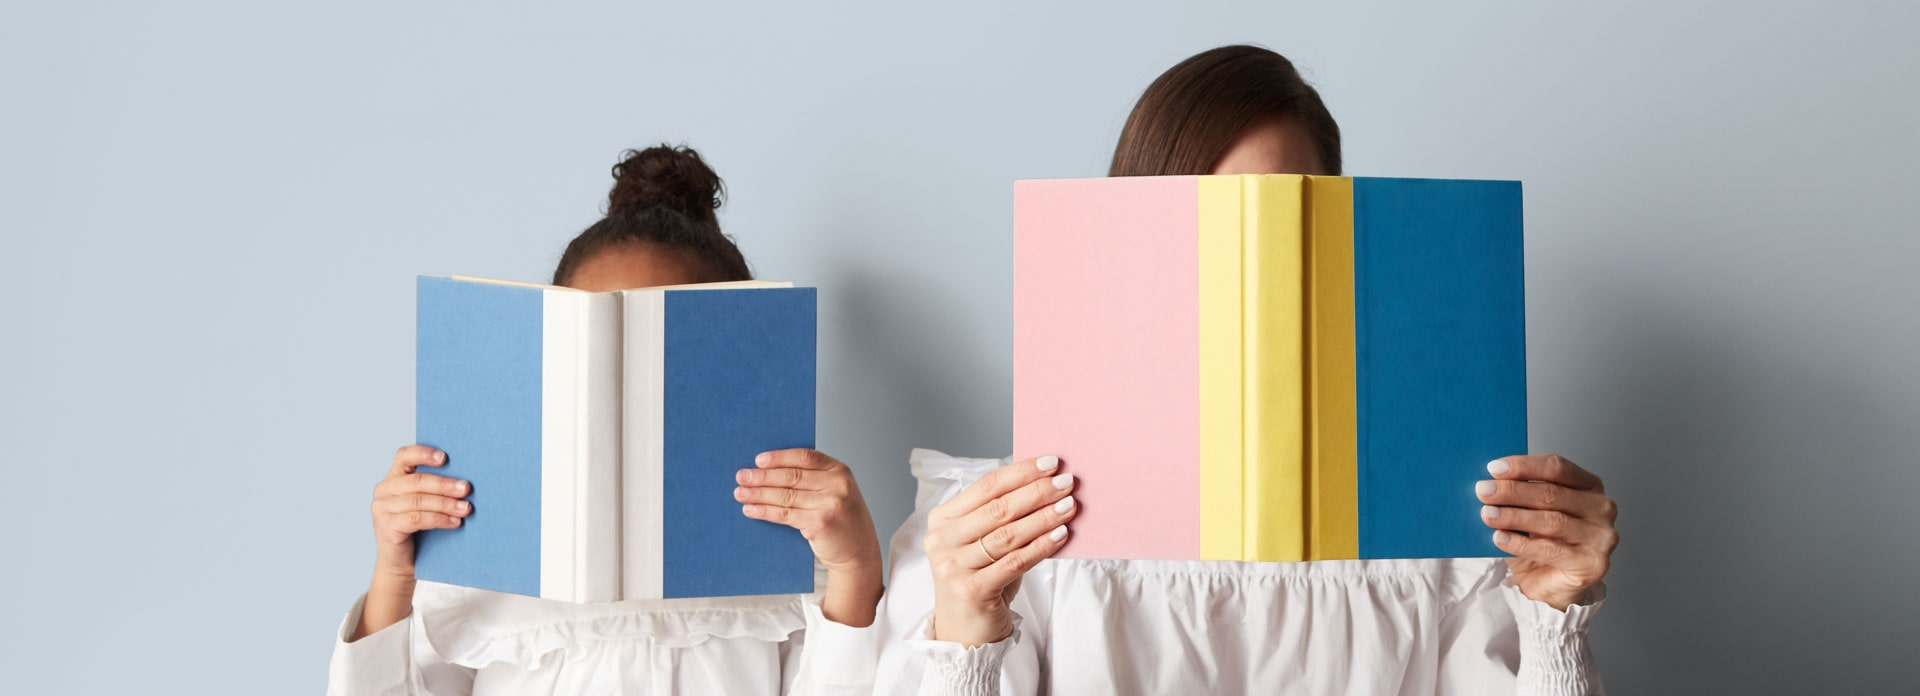 A pair of people holding up books covering their faces.